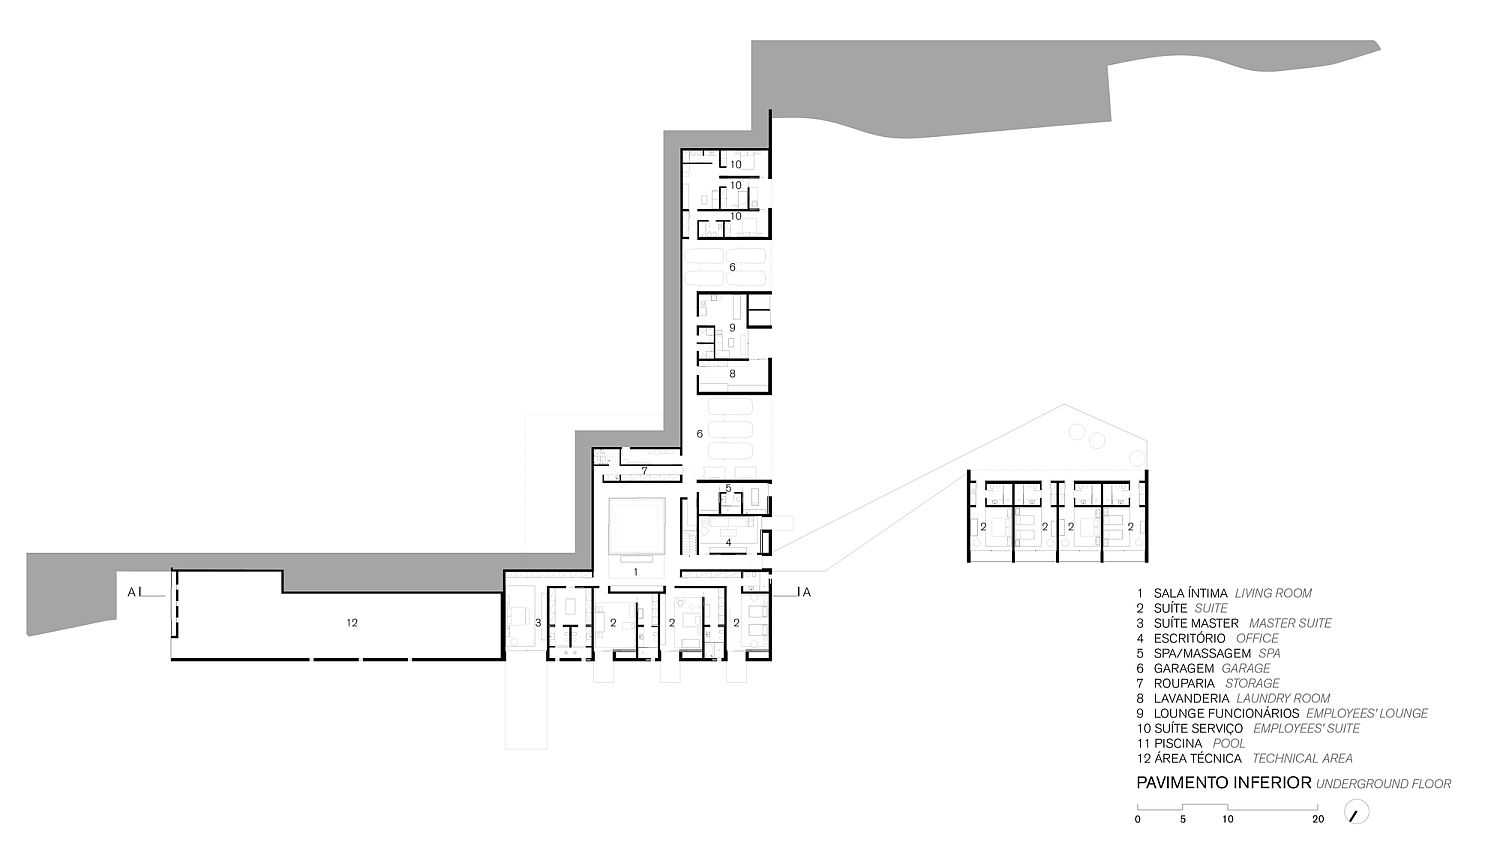 Upper level floor plan that holds the public areas